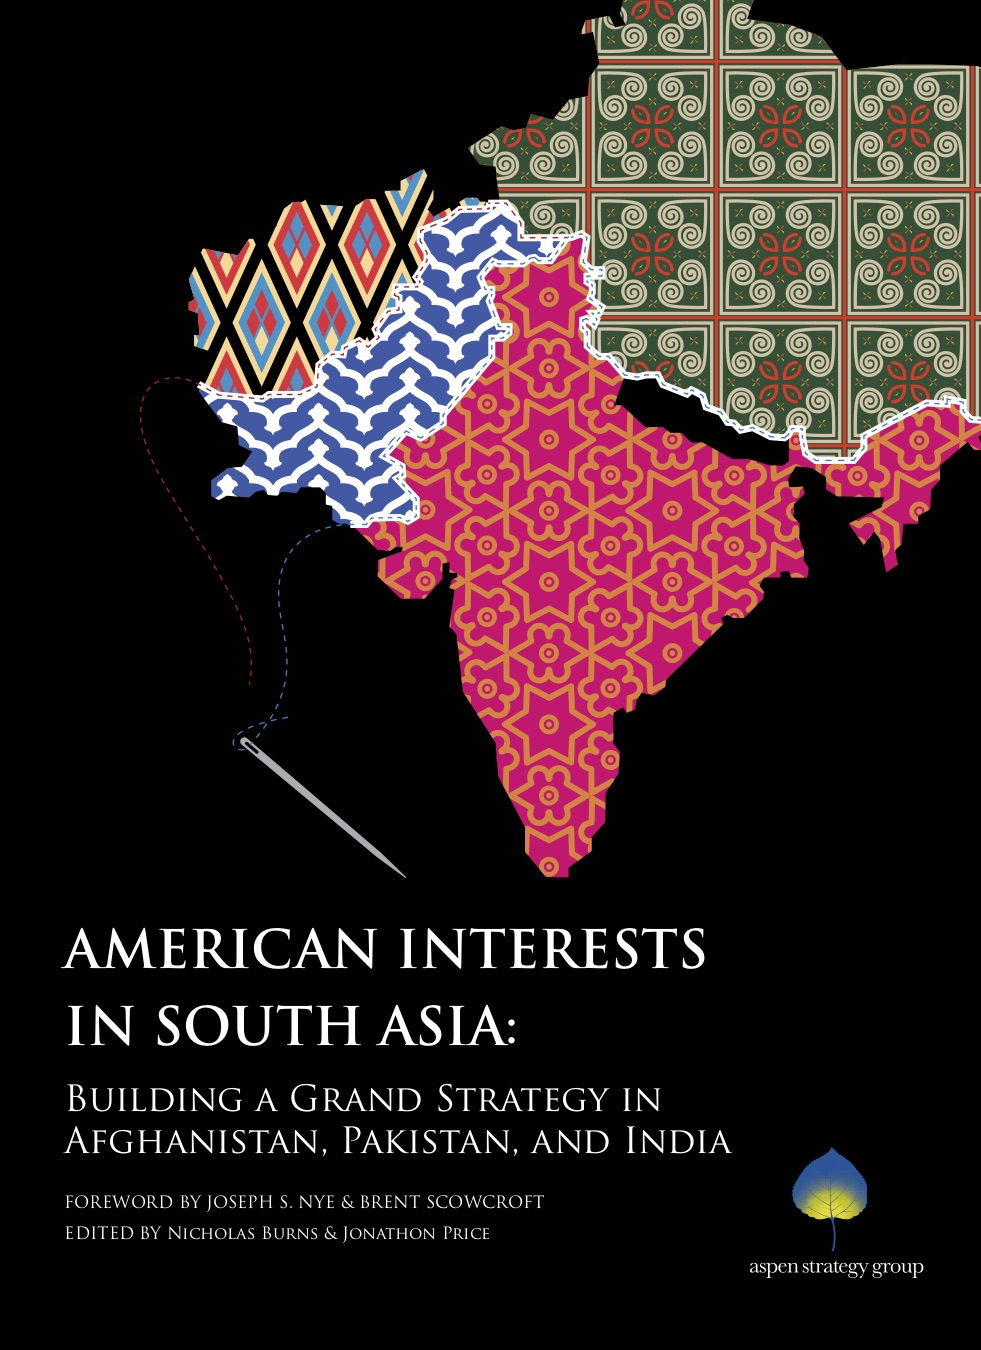 american interests in south asia - This edition contains a collection of commissioned papers that provide an intensive exploration of the interconnected national security challenges posed by the events in Afghanistan, Pakistan, and India. Chapters focus on the lessons from history and balance of power in the region, the current strategy in Afghanistan, the effect of American foreign assistance and private sector development, and the implications for the United States of India-Pakistan relations Together, these chapters seek to further collective understanding of the current issues facing the region and help policymakers find a way to cope with what has become one of America's most pressing security problems.Contributors include: Samina Ahmed, Nancy Birdsall, Robert D. Blackwill, James Dobbins, John Dowdy, Wren Elhai, Andrew Erdmann, Nathaniel Fick, Molly Kinder, Clare Lockhart, Anja Manuel, Michael O'Hanlon, and Meghan O'SullivanPublished: September 20, 2011